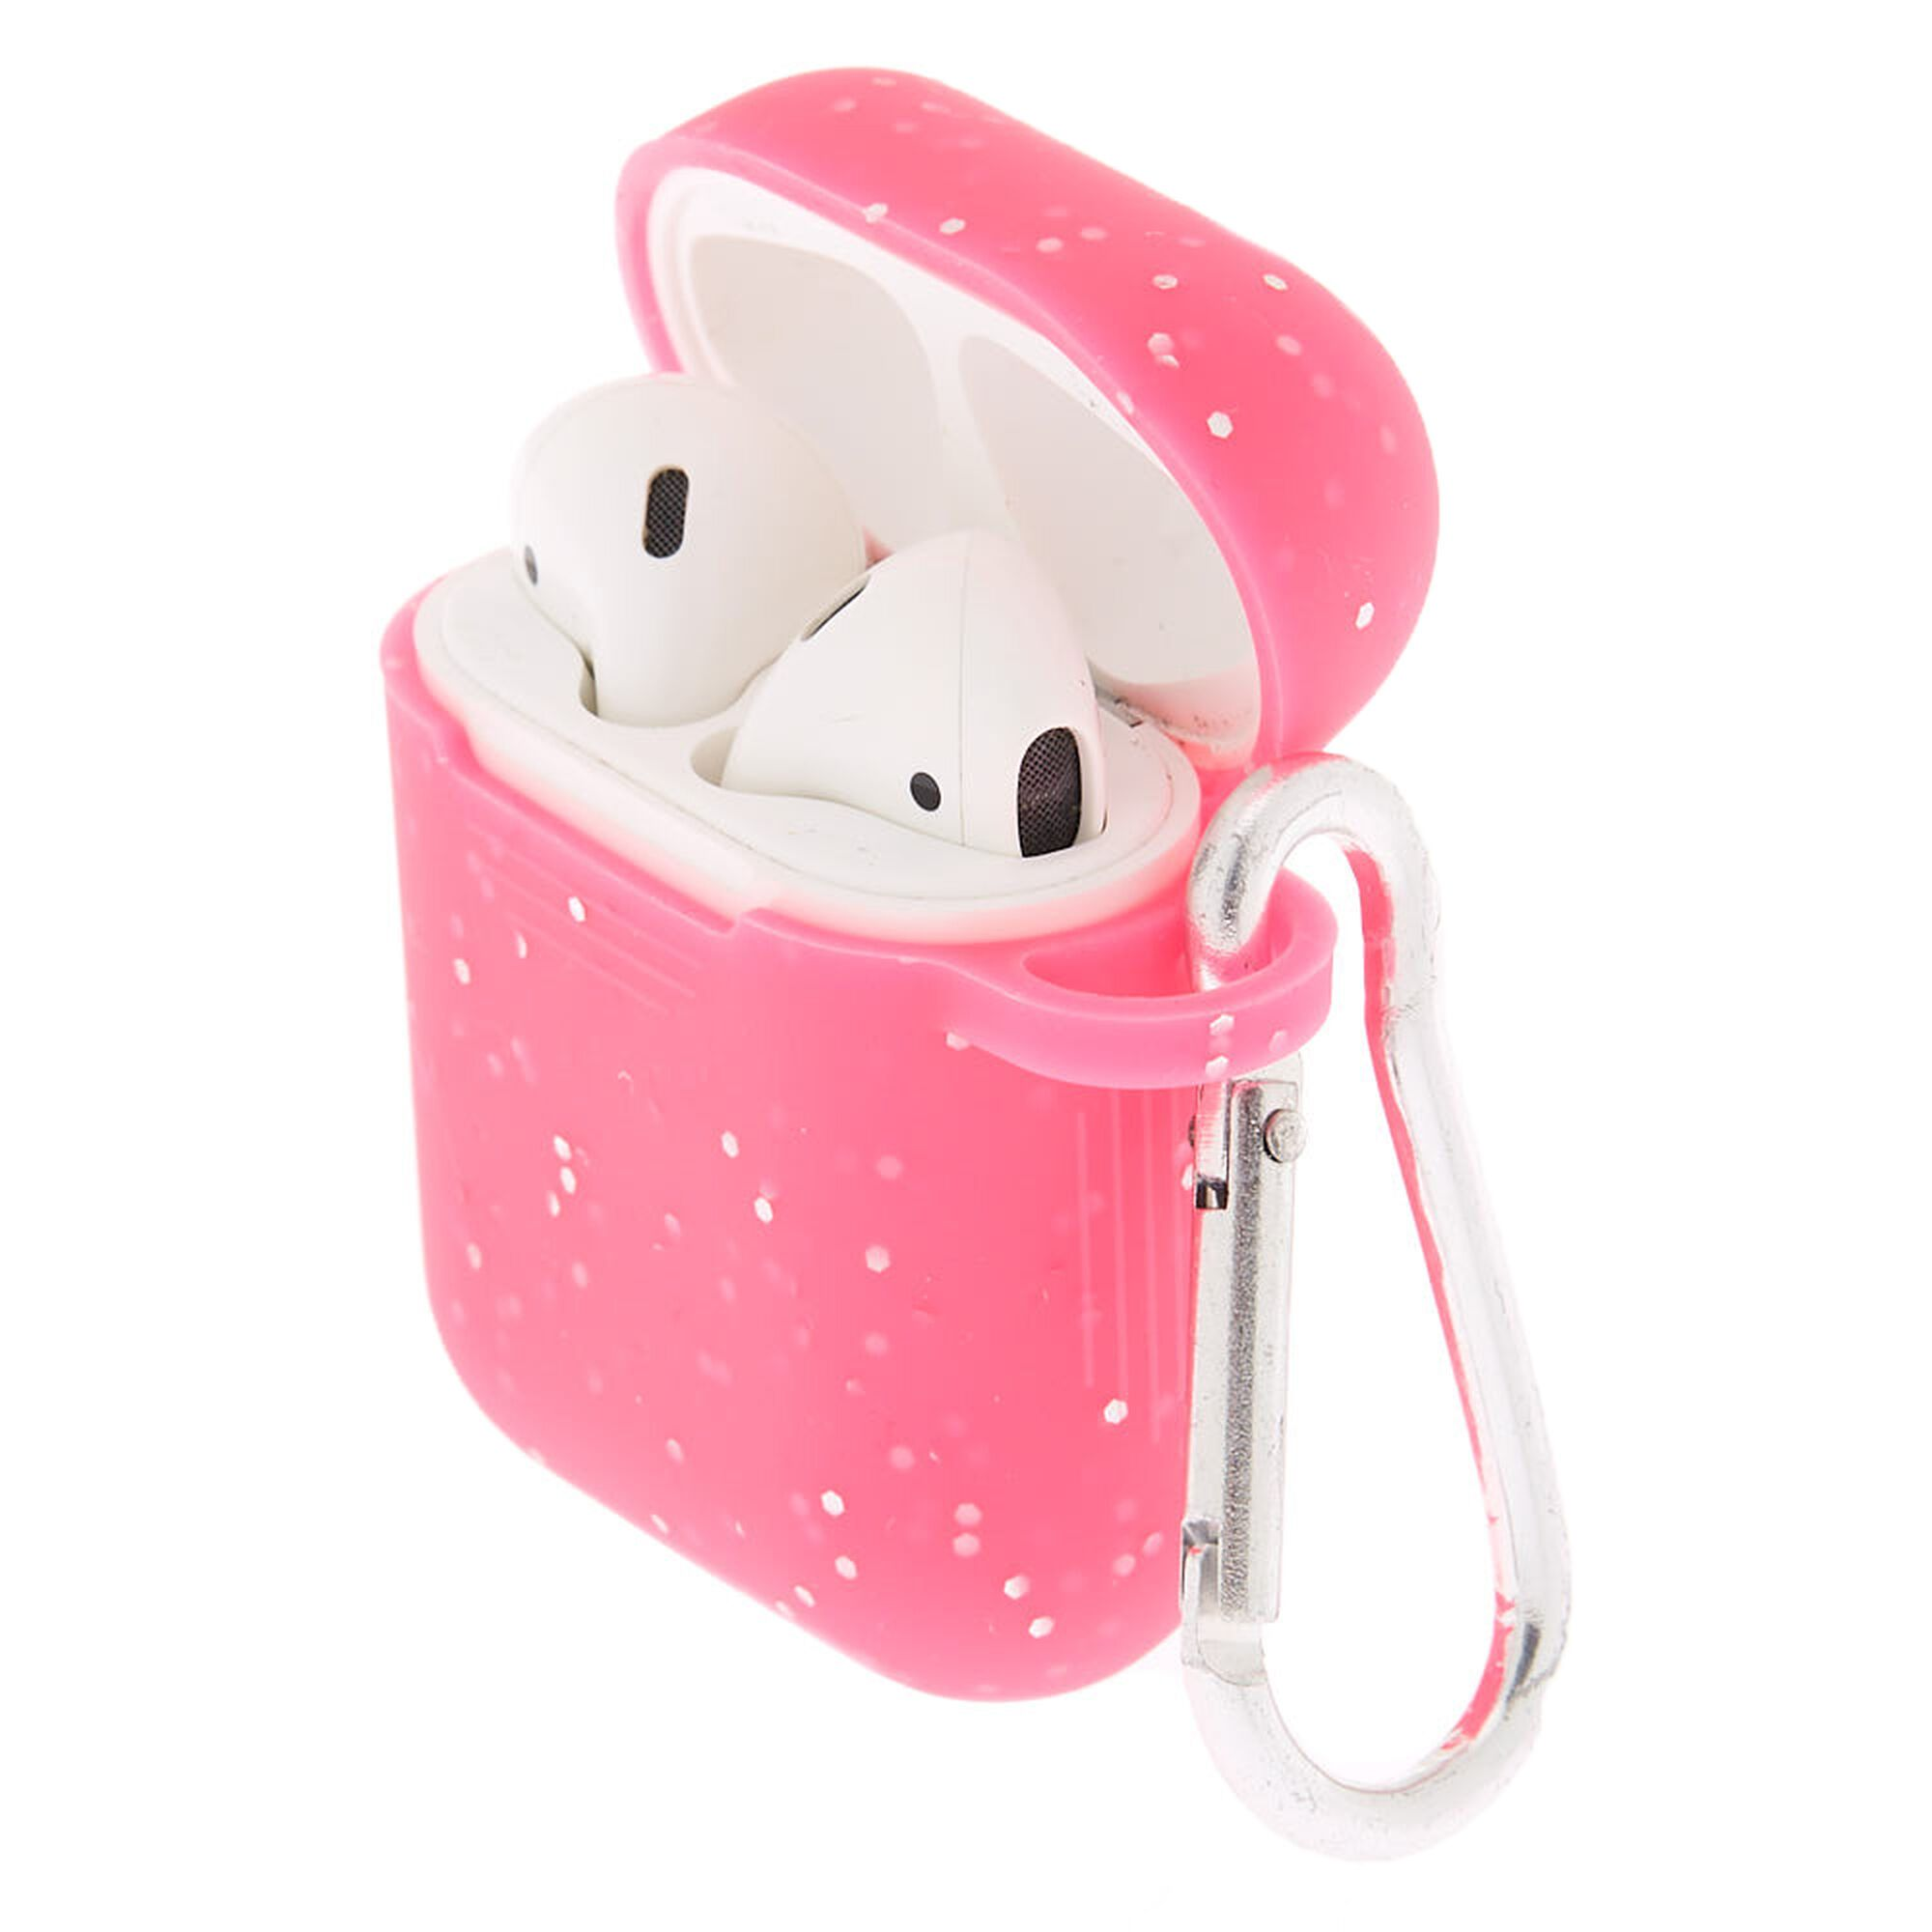 Hot Pink Silicone Earbud Case Cover - Compatible With Apple AirPods